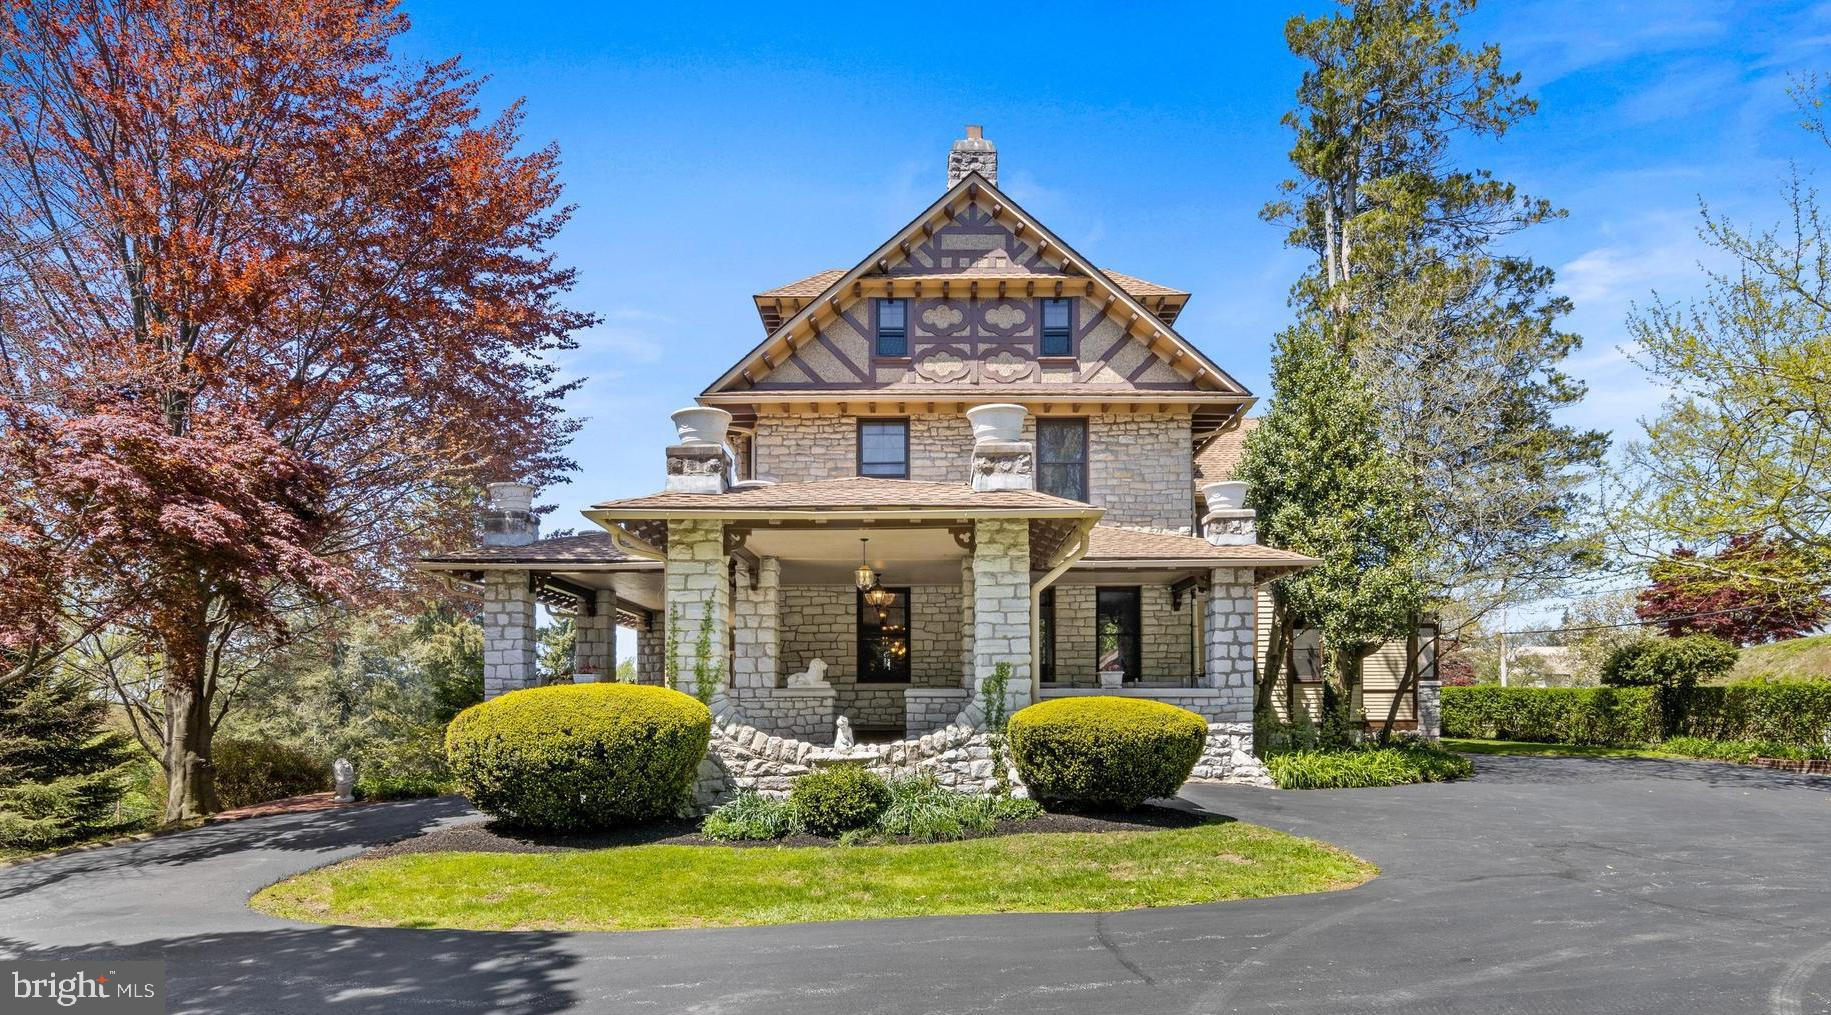 Welcome to Eyre View at 611 N. High Street; located on a full acre of land in the highly sought-after Northeast quadrant of the West Chester Borough. This stunning Victorian/English Tudor was the original home of Senator T. Lawrence Eyre and built circa 1898 by Joseph Miller Huston who was made famous by the construction of the Pennsylvania State Capital building in Harrisburg. Purchased in 1972 by the current owners, this home has been meticulously restored to its original historic beauty with spectacular architectural detail. As you pull up the driveway from N. High Street, you are led to the Porte Cochere and greeted by a beautiful wrap around porch with panoramic views of gorgeous sunsets and overlooking the West Chester Country Club. The front door entrance boasts a Grand Foyer with center staircase, chestnut wainscoting and hand carved gargoyles. The foyer is flanked by a Rococo style music room with original crystal chandelier and restored gold leaf detail and a Parlor/Living Room featuring a large fireplace surrounded by carved Corinthian columns and coffered ceiling. The formal dining room features a gas fireplace with custom built-in storage for all your entertaining needs, embossed ceiling and a statement Victorian chandelier. The heart of the home is found in the light and bright custom gourmet kitchen. Warm up by the Italian carved, white marble fireplace (ready for a gas insert) and cook to your hearts desire in this custom kitchen featuring two ovens, commercial cook top, subzero frig, two dishwashers  and direct access to the hardscape patio and pool.  The second floor features a large master bedroom en-suite with a grand dressing room, two additional bedrooms and laundry room with tons of extra storage, including a cedar closet. On the third floor you will find two bedrooms, full bath and original over-sized billiard room with wood burning fireplace.  Prime Location, Award-Winning School District, Low Taxes and walking distance to local parks, shops